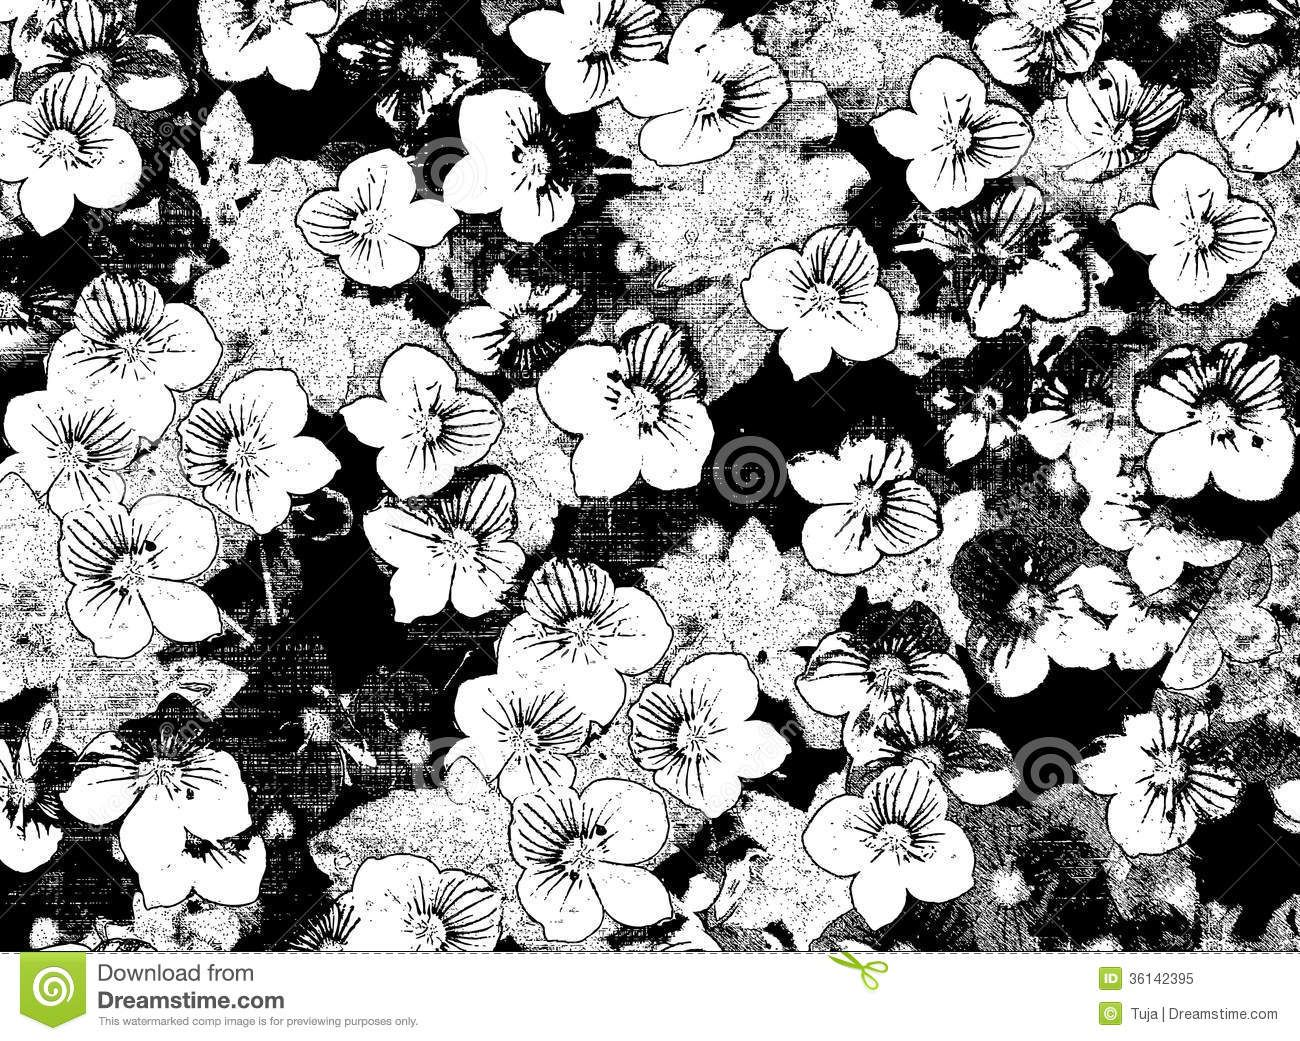 Black And White Flower Backgrounds 6 High Resolution Wallpaper Jpg